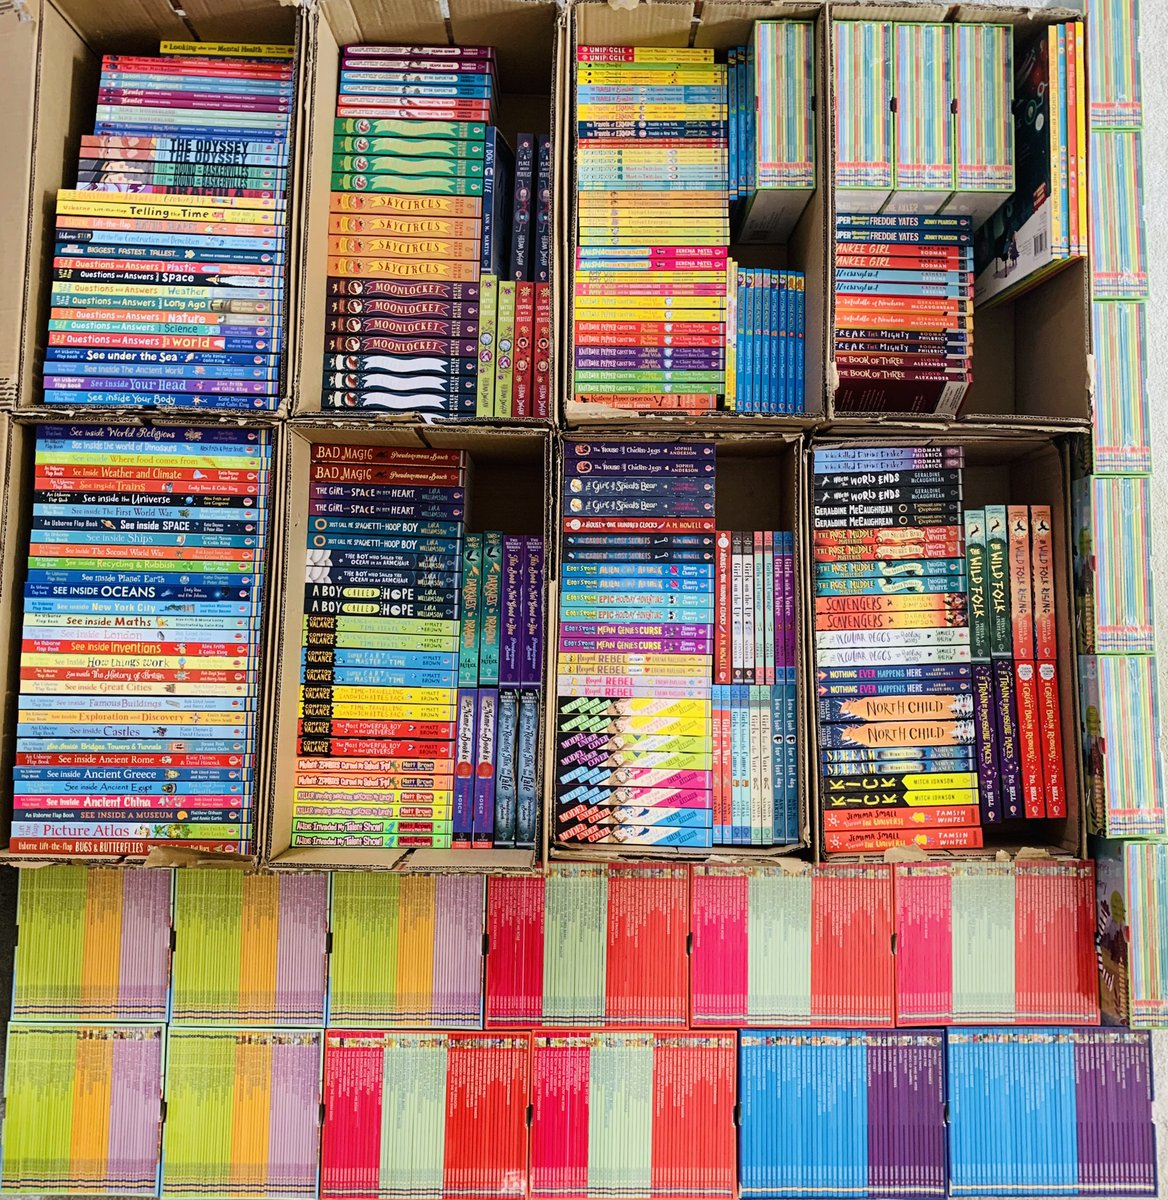 😍 Isn't this just beautiful? Such an array of fabulous fiction! Today I delivered £2,800 of books to @lindfieldpri and they didn't spend a penny! Let me know if you'd like me to help your school too. #libraryrefresh #100kbookgiveaway #tranformyourschoollibrary @UsborneBAH